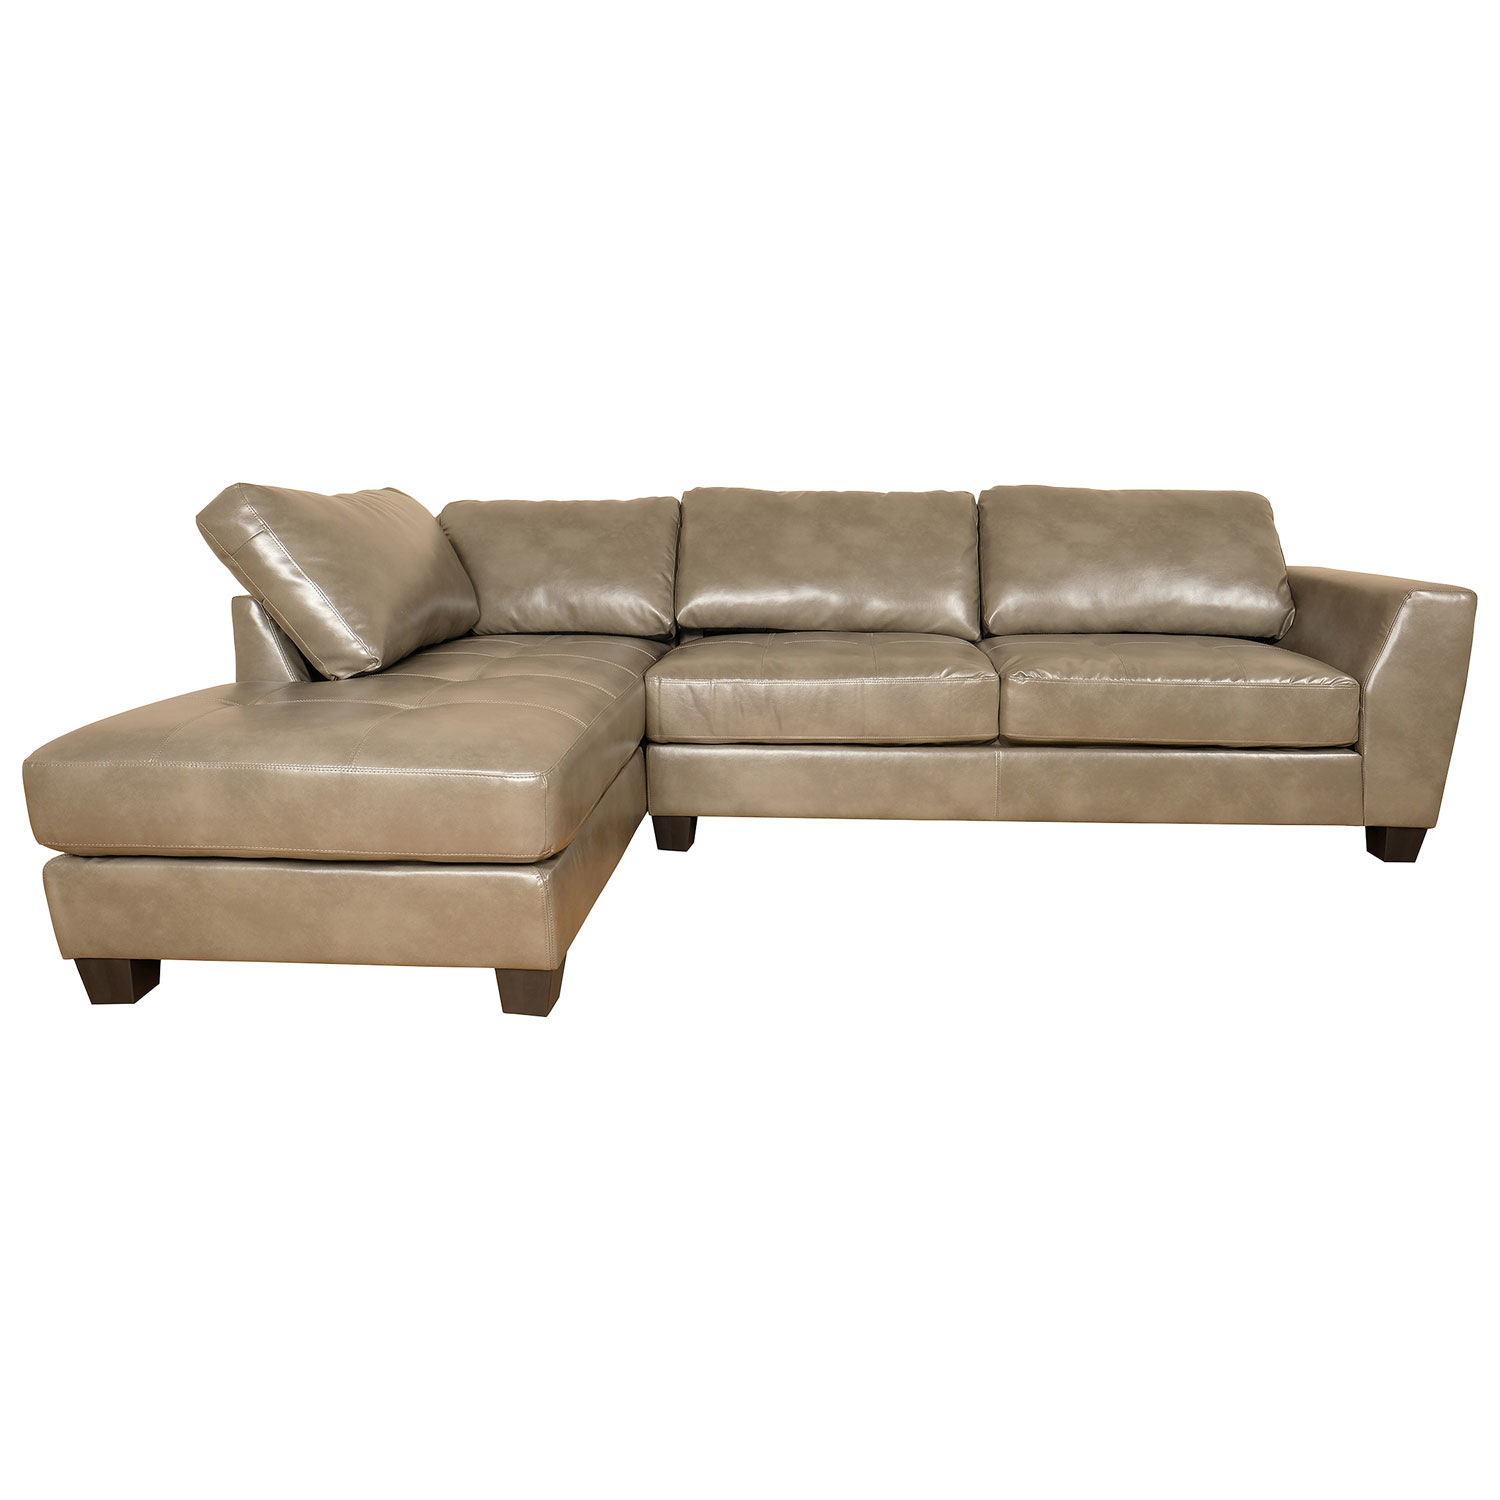 Sofas Couches Sectional Sofas Loveseats Best Buy Canada